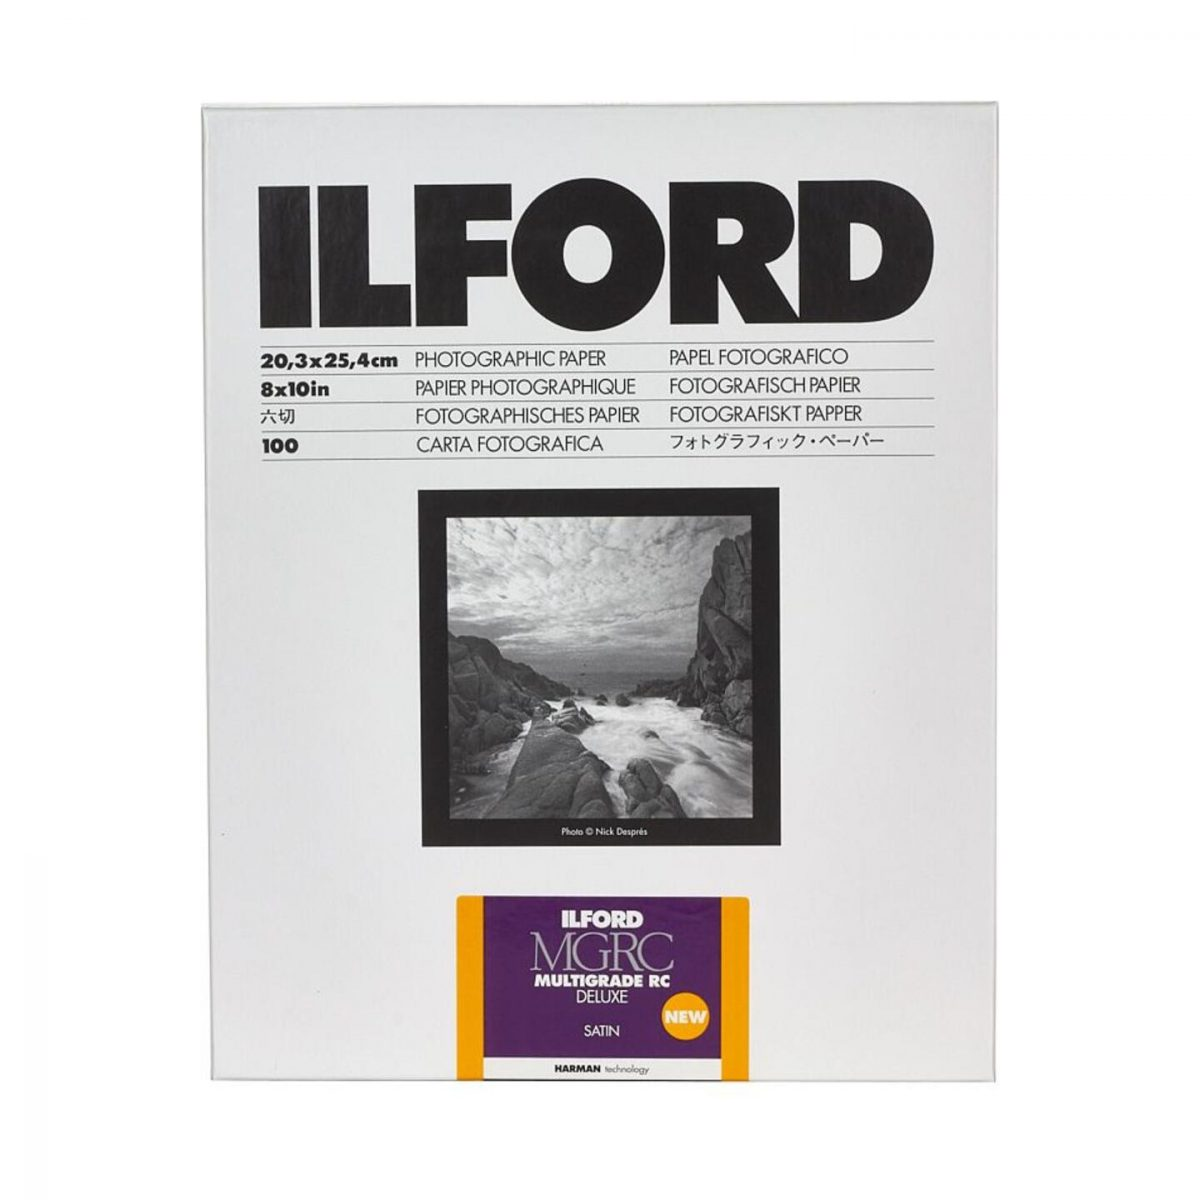 ilford_mg_rc_deluxe_satin_01